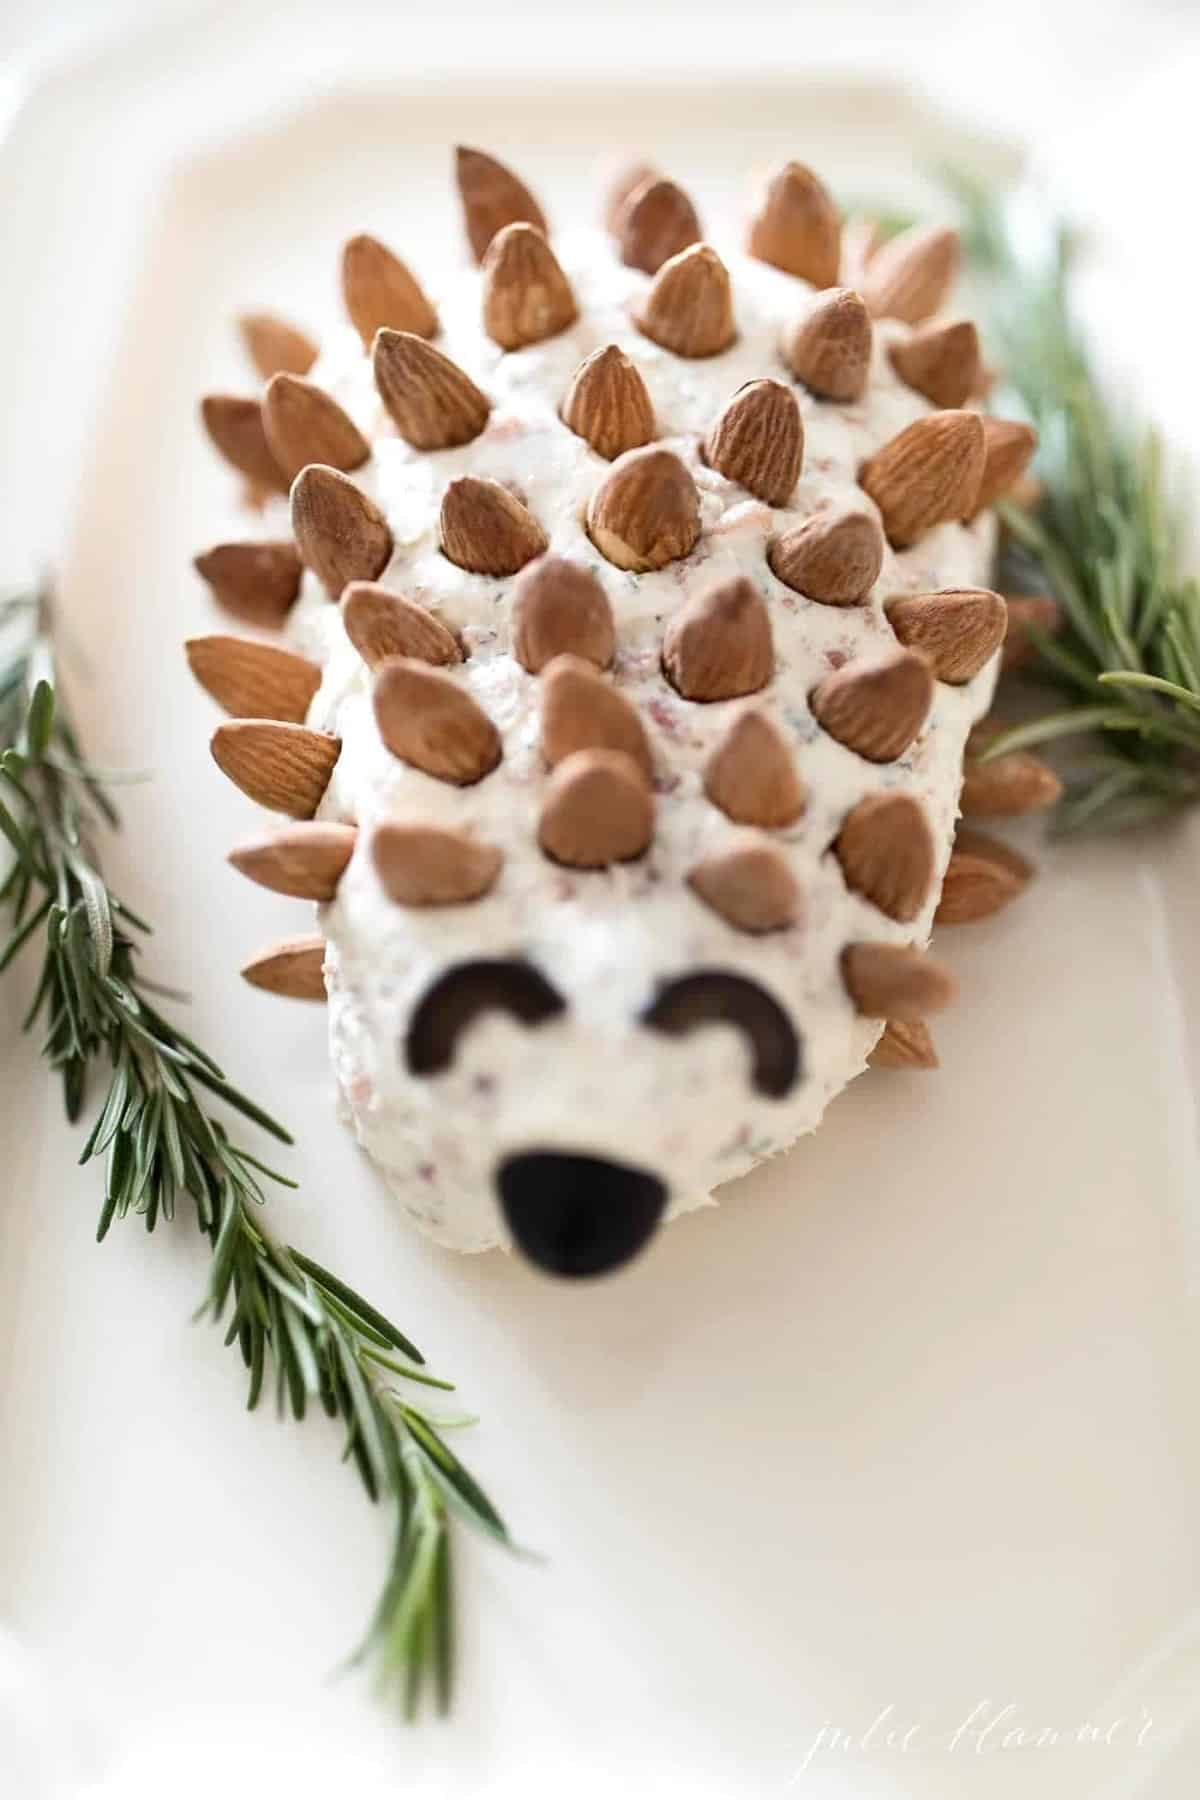 Cheeseball in the shape of a hedgehog on a white platter.